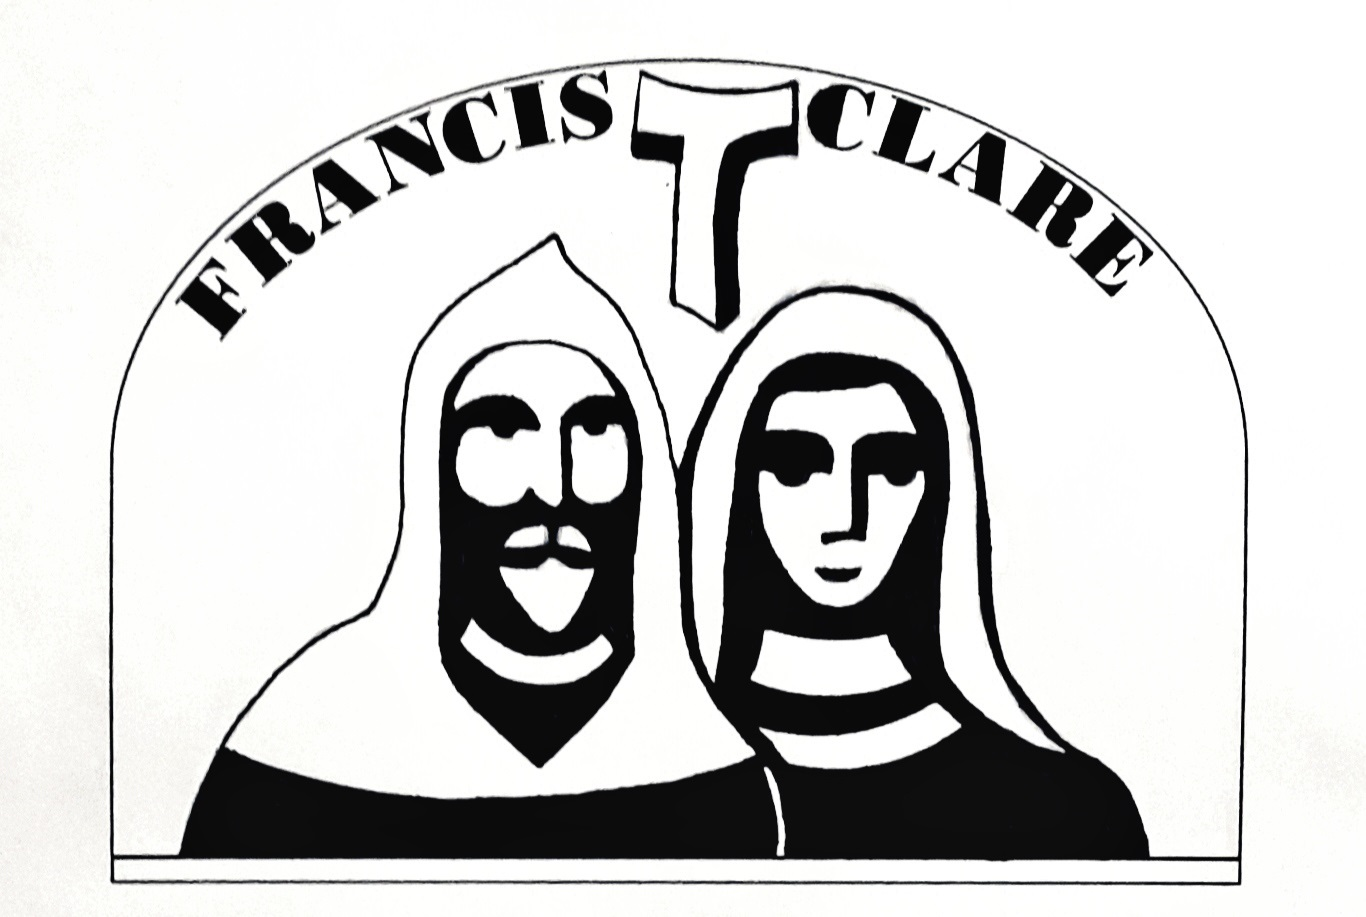 FrancisandClare2.jpg